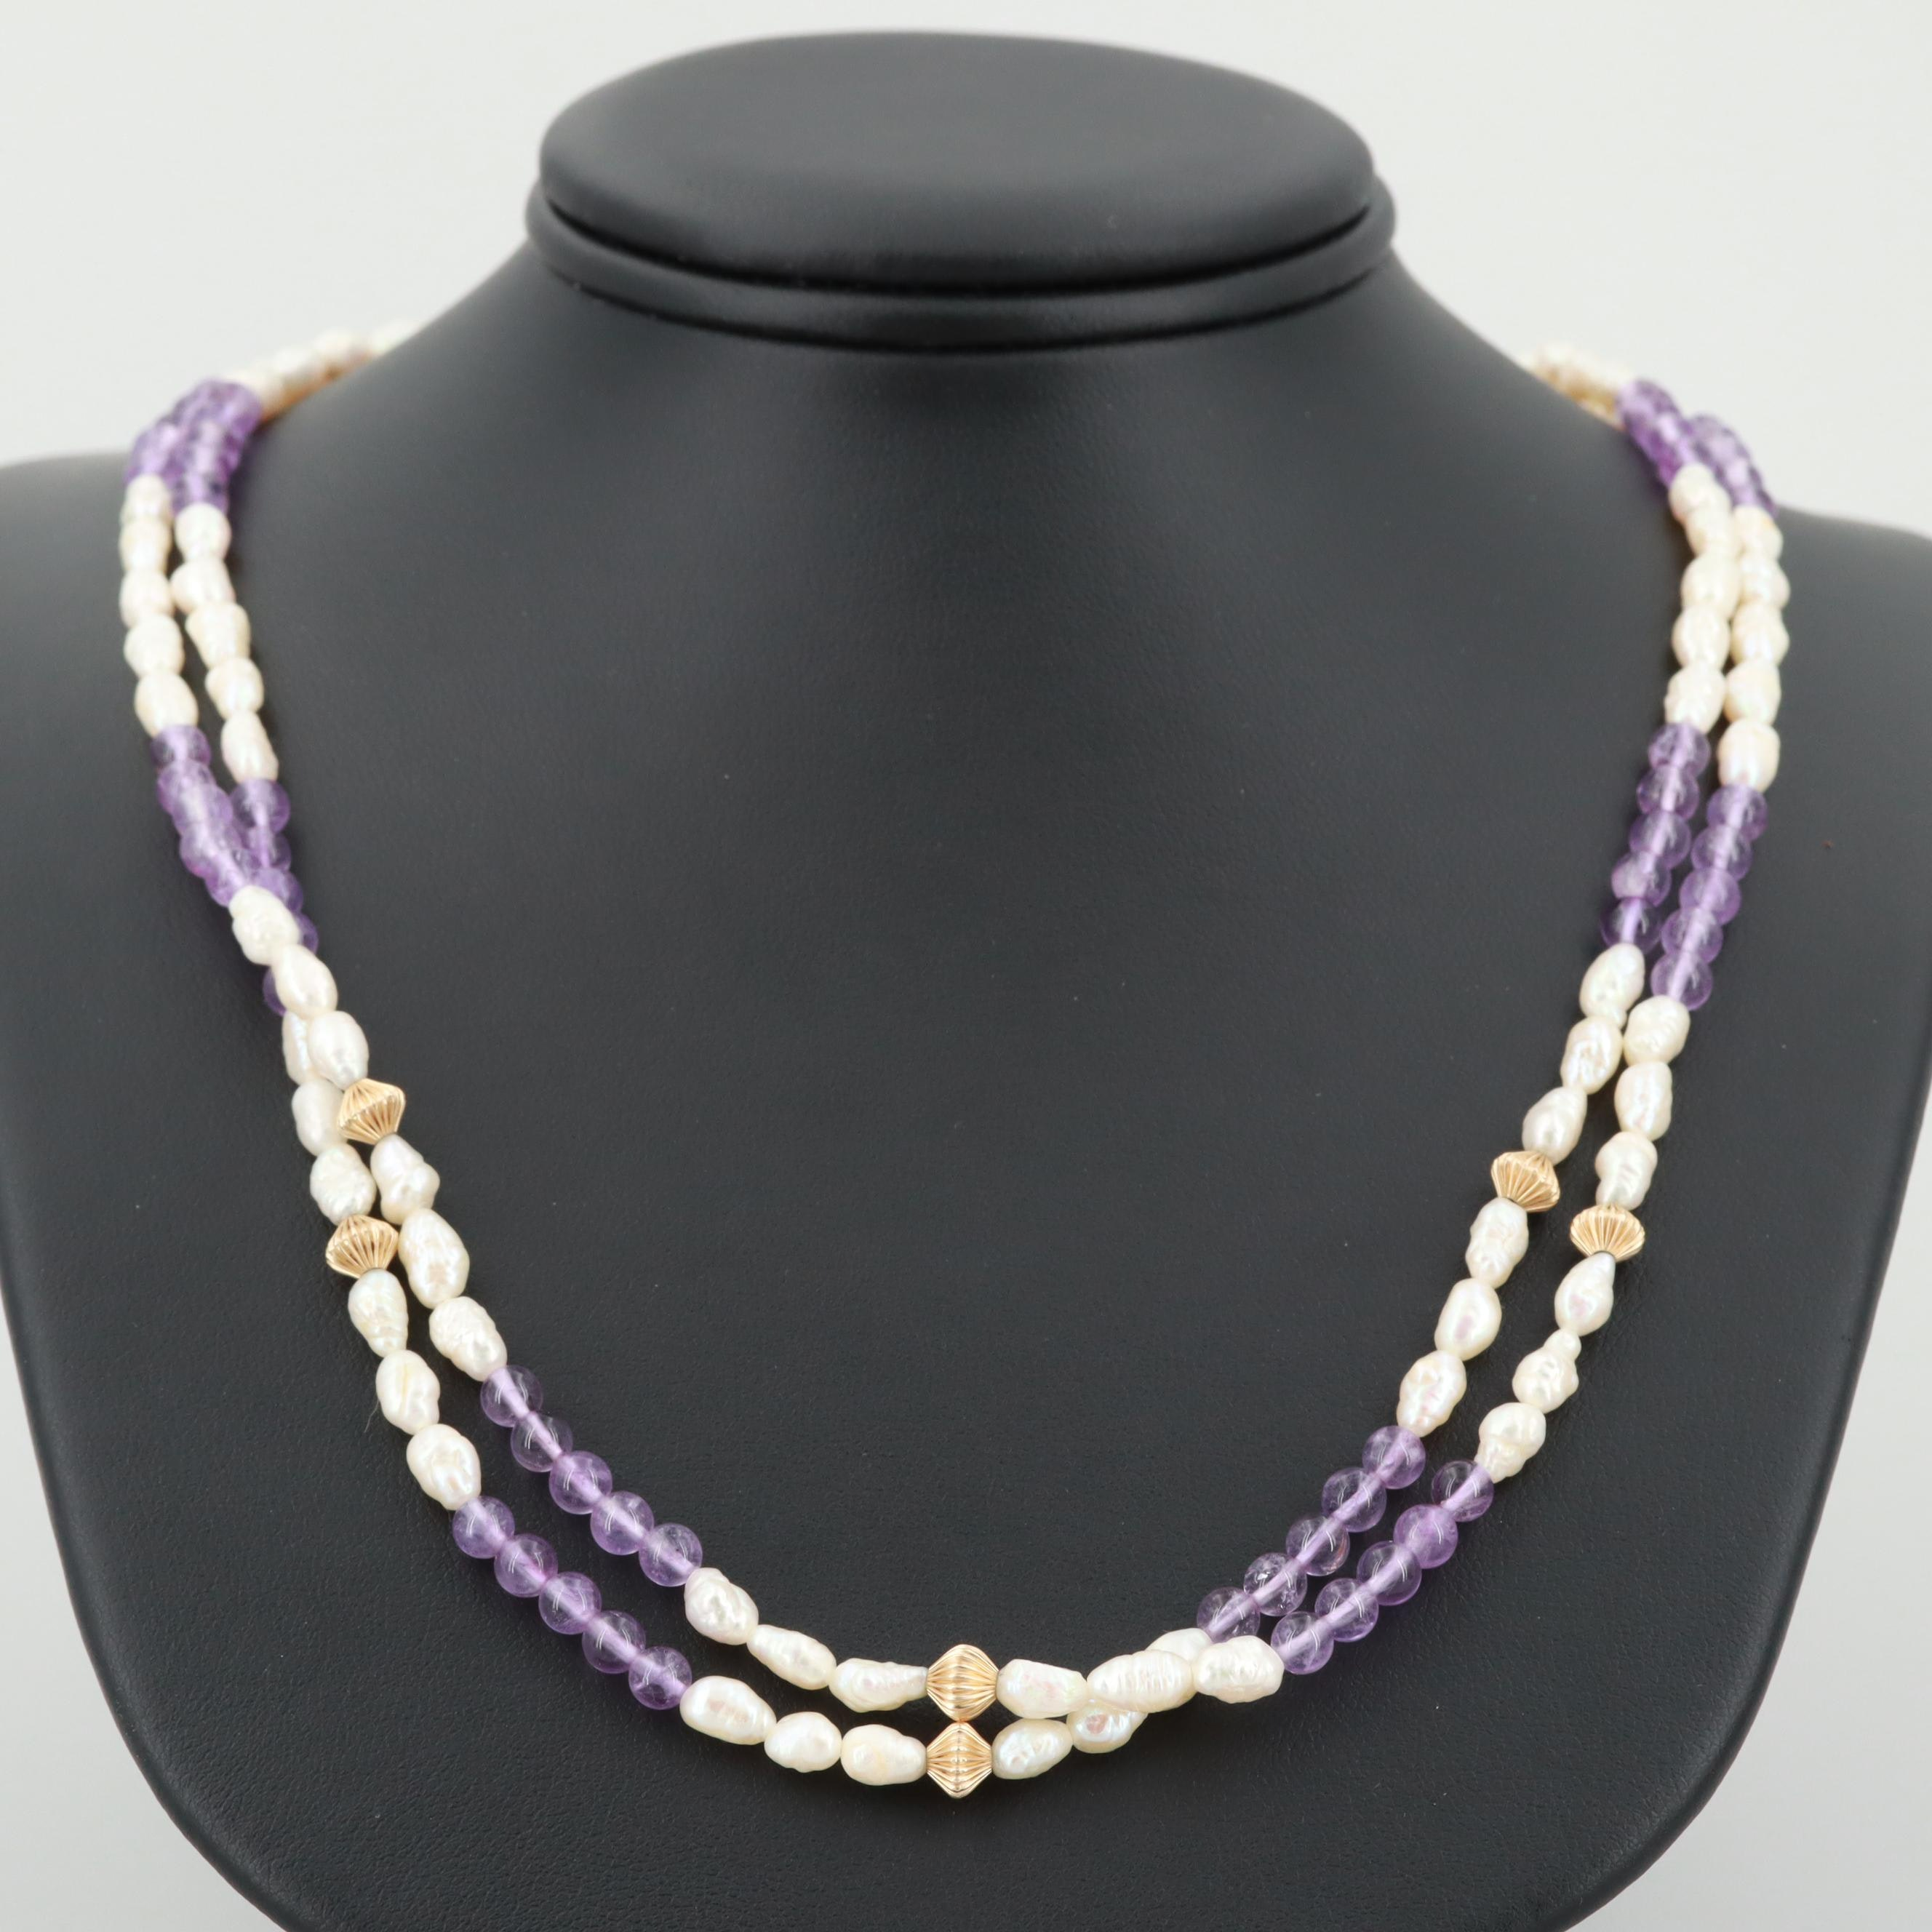 I14K Yellow Gold Double Strand Amethyst and Cultured Pearl Necklace